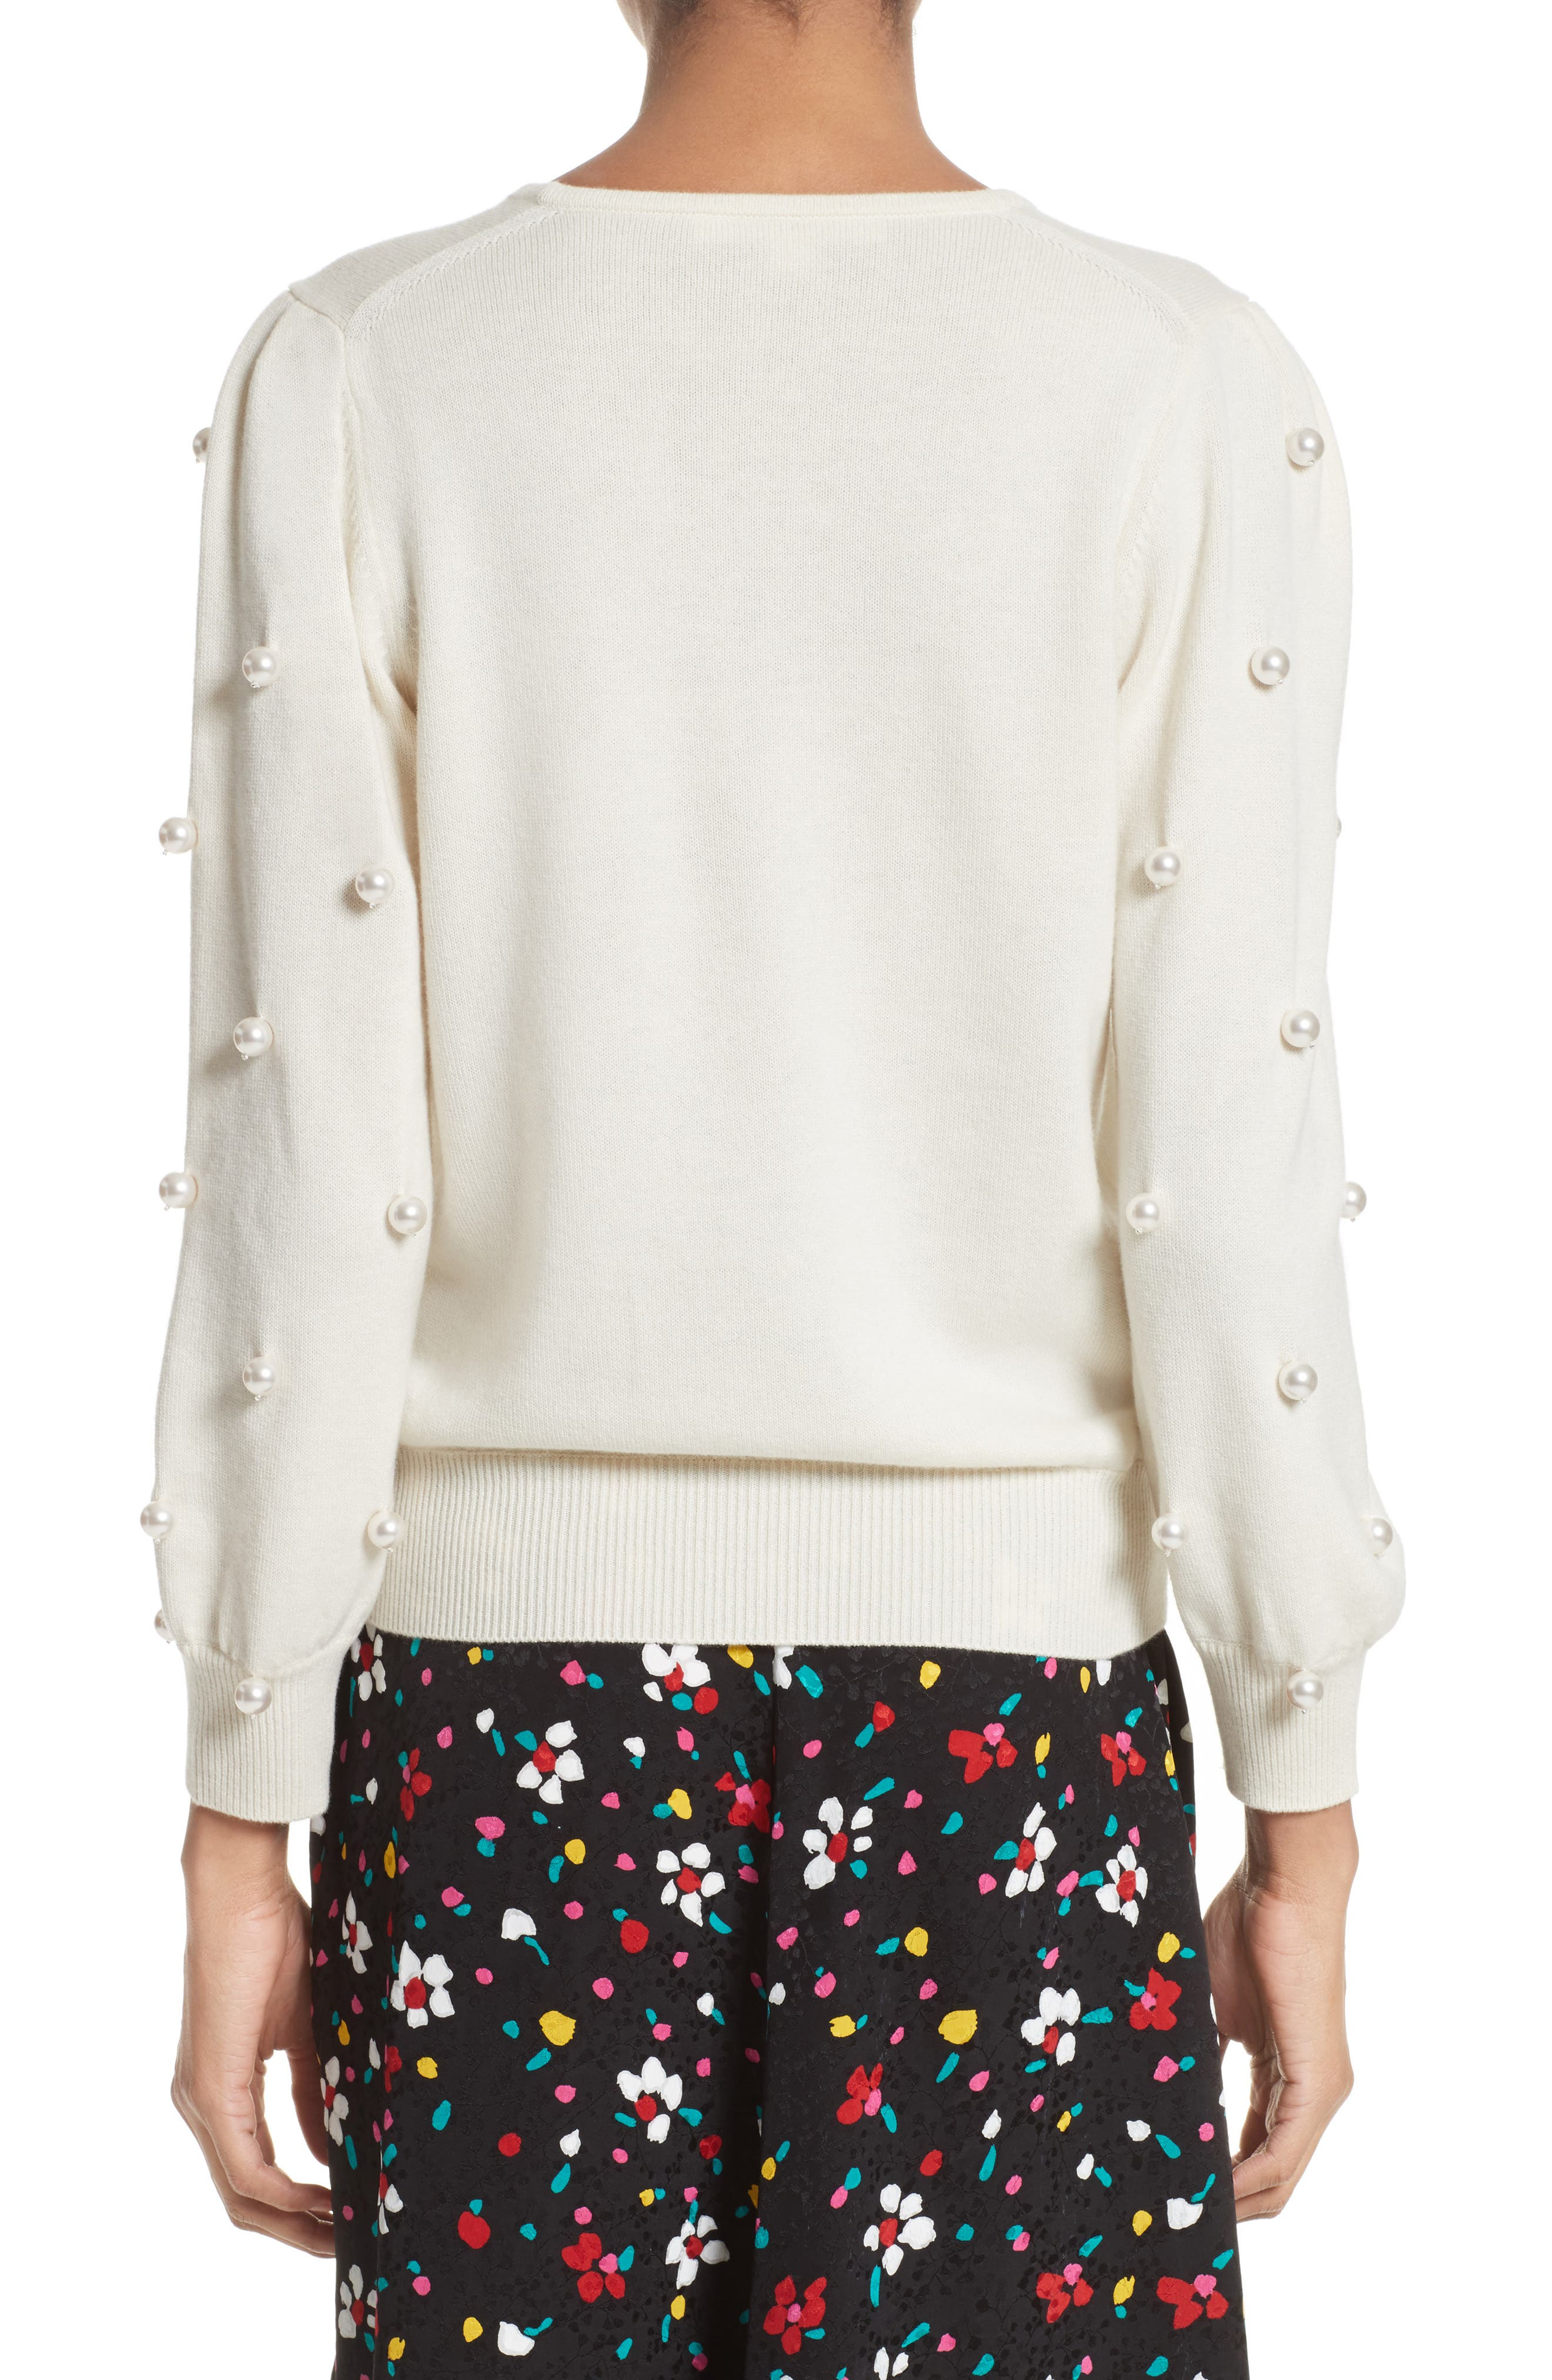 Imitation Pearl Embellished Wool & Cashmere Sweater,                             Alternate thumbnail 4, color,